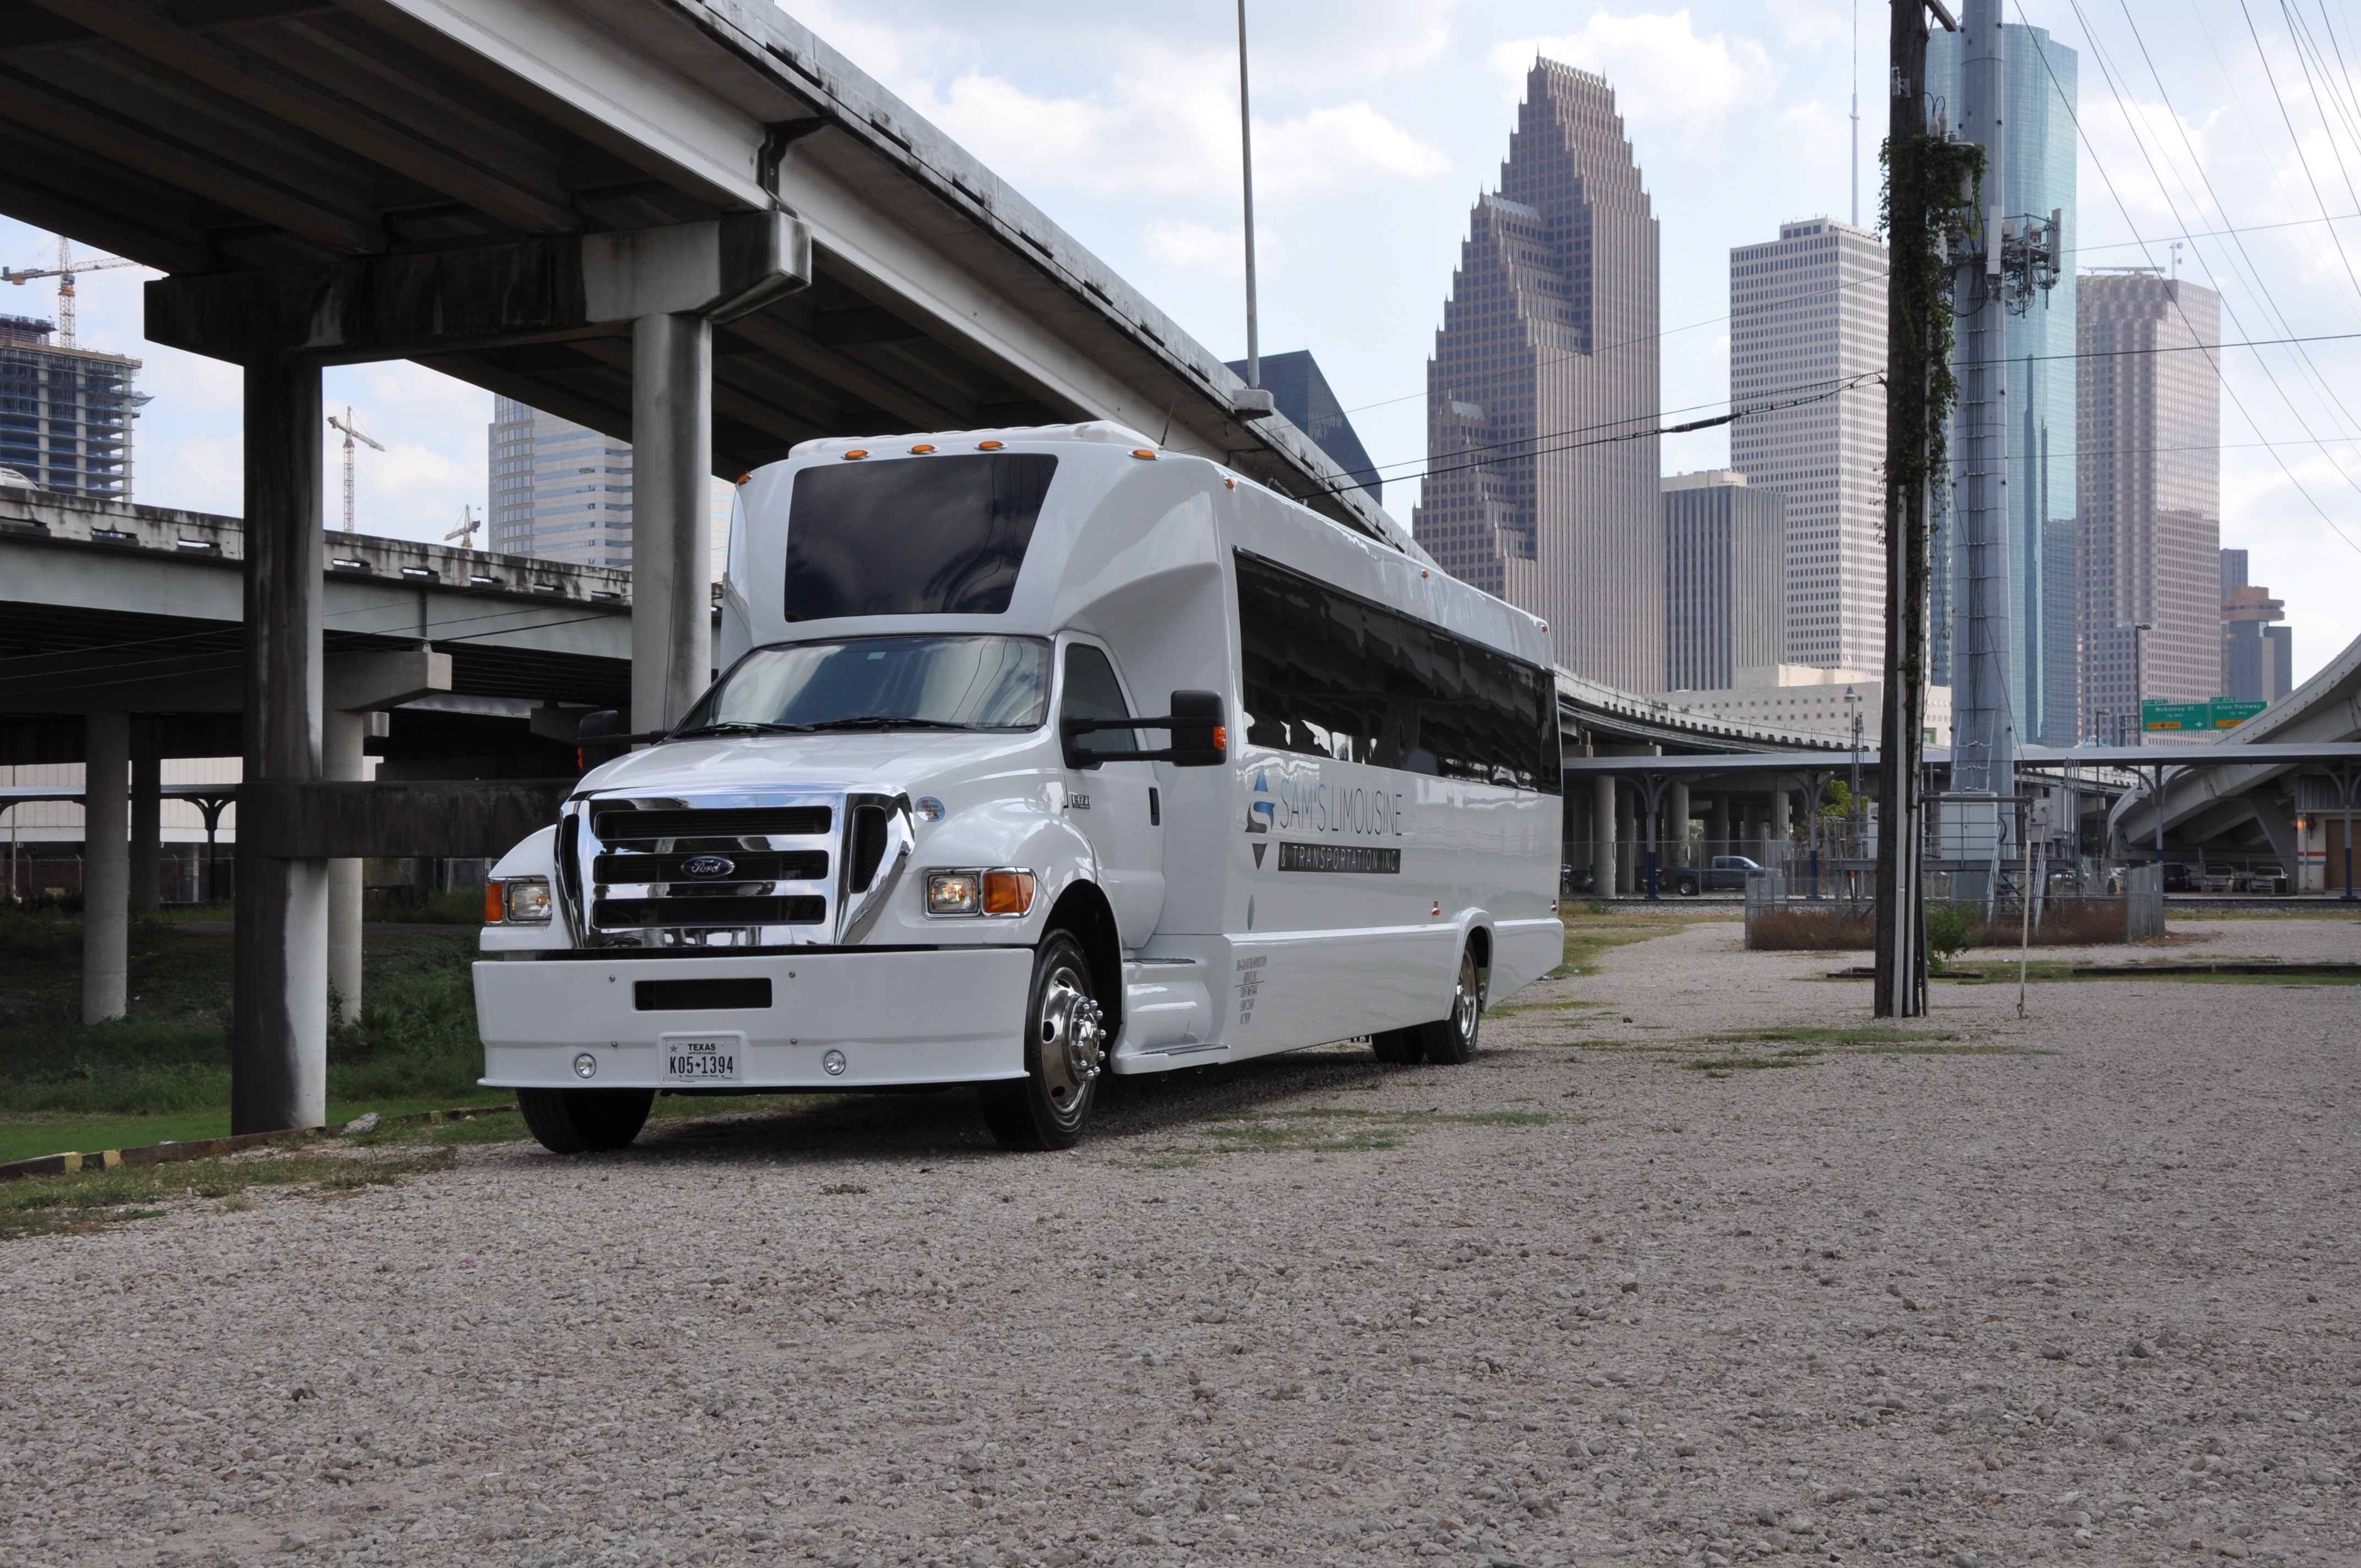 Rates - Charter Bus, Shuttle, Party Bus, Limo, & SUV Rental